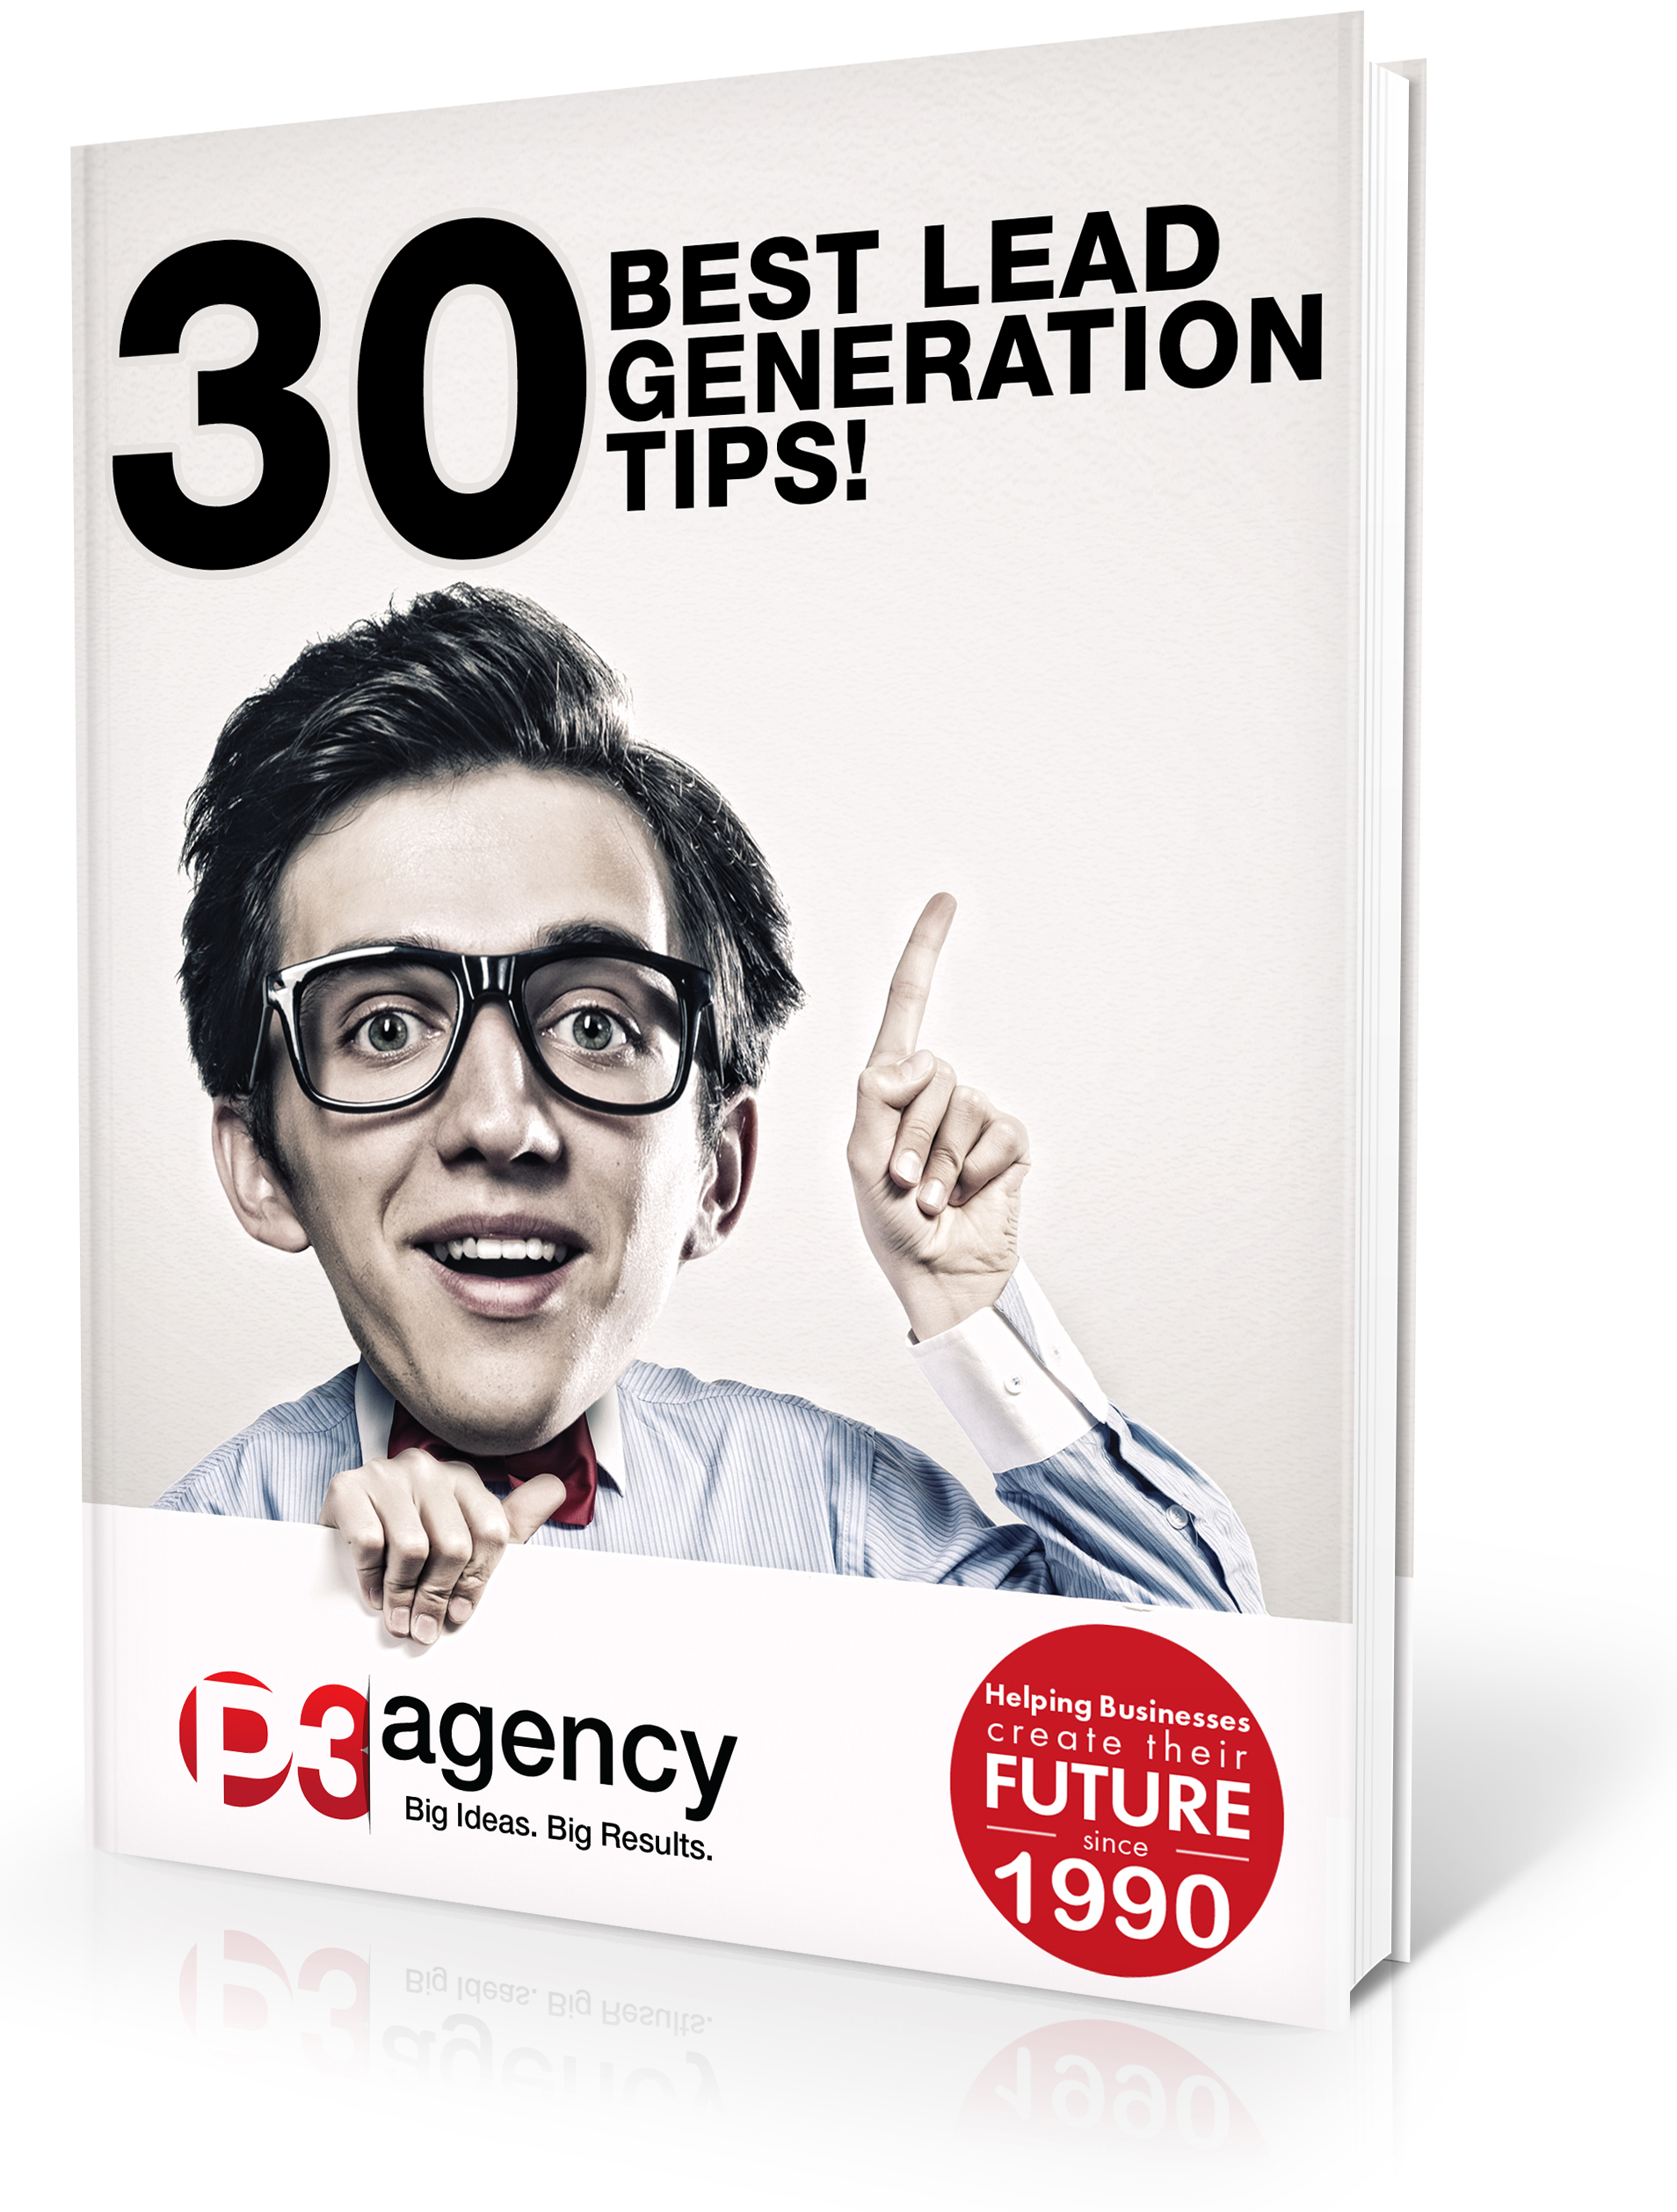 30 Lead Generation Tips to help you grow your business